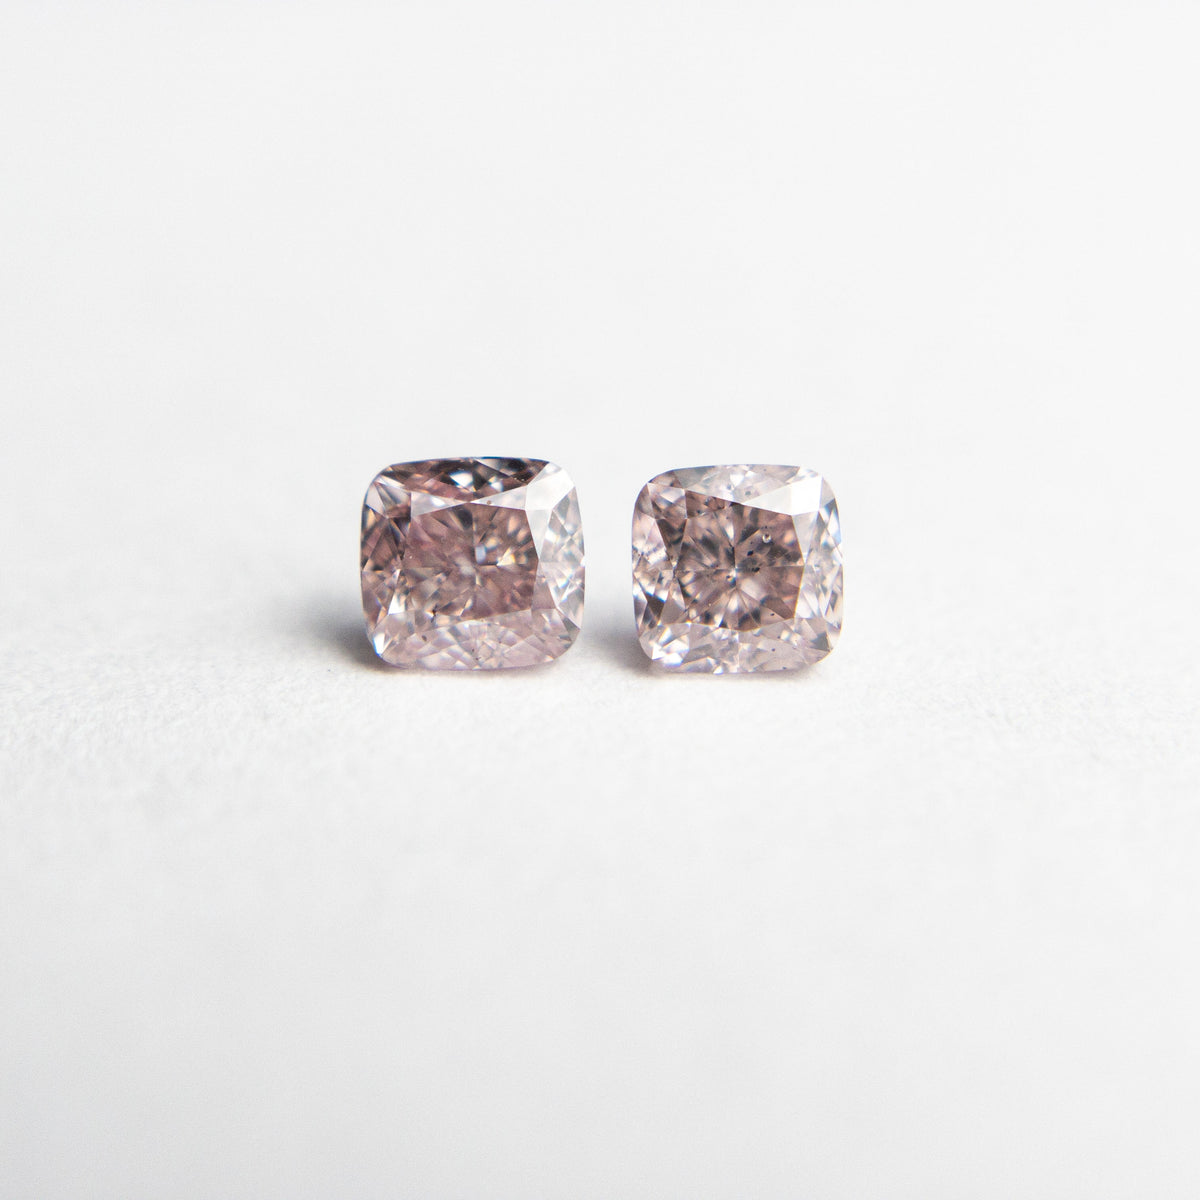 2pc 0.47cttw 3.44x3.26x2.32mm Argyle GIA Fancy Pink SI1/SI2 Cushion Brilliant Matching Pair 18683-01